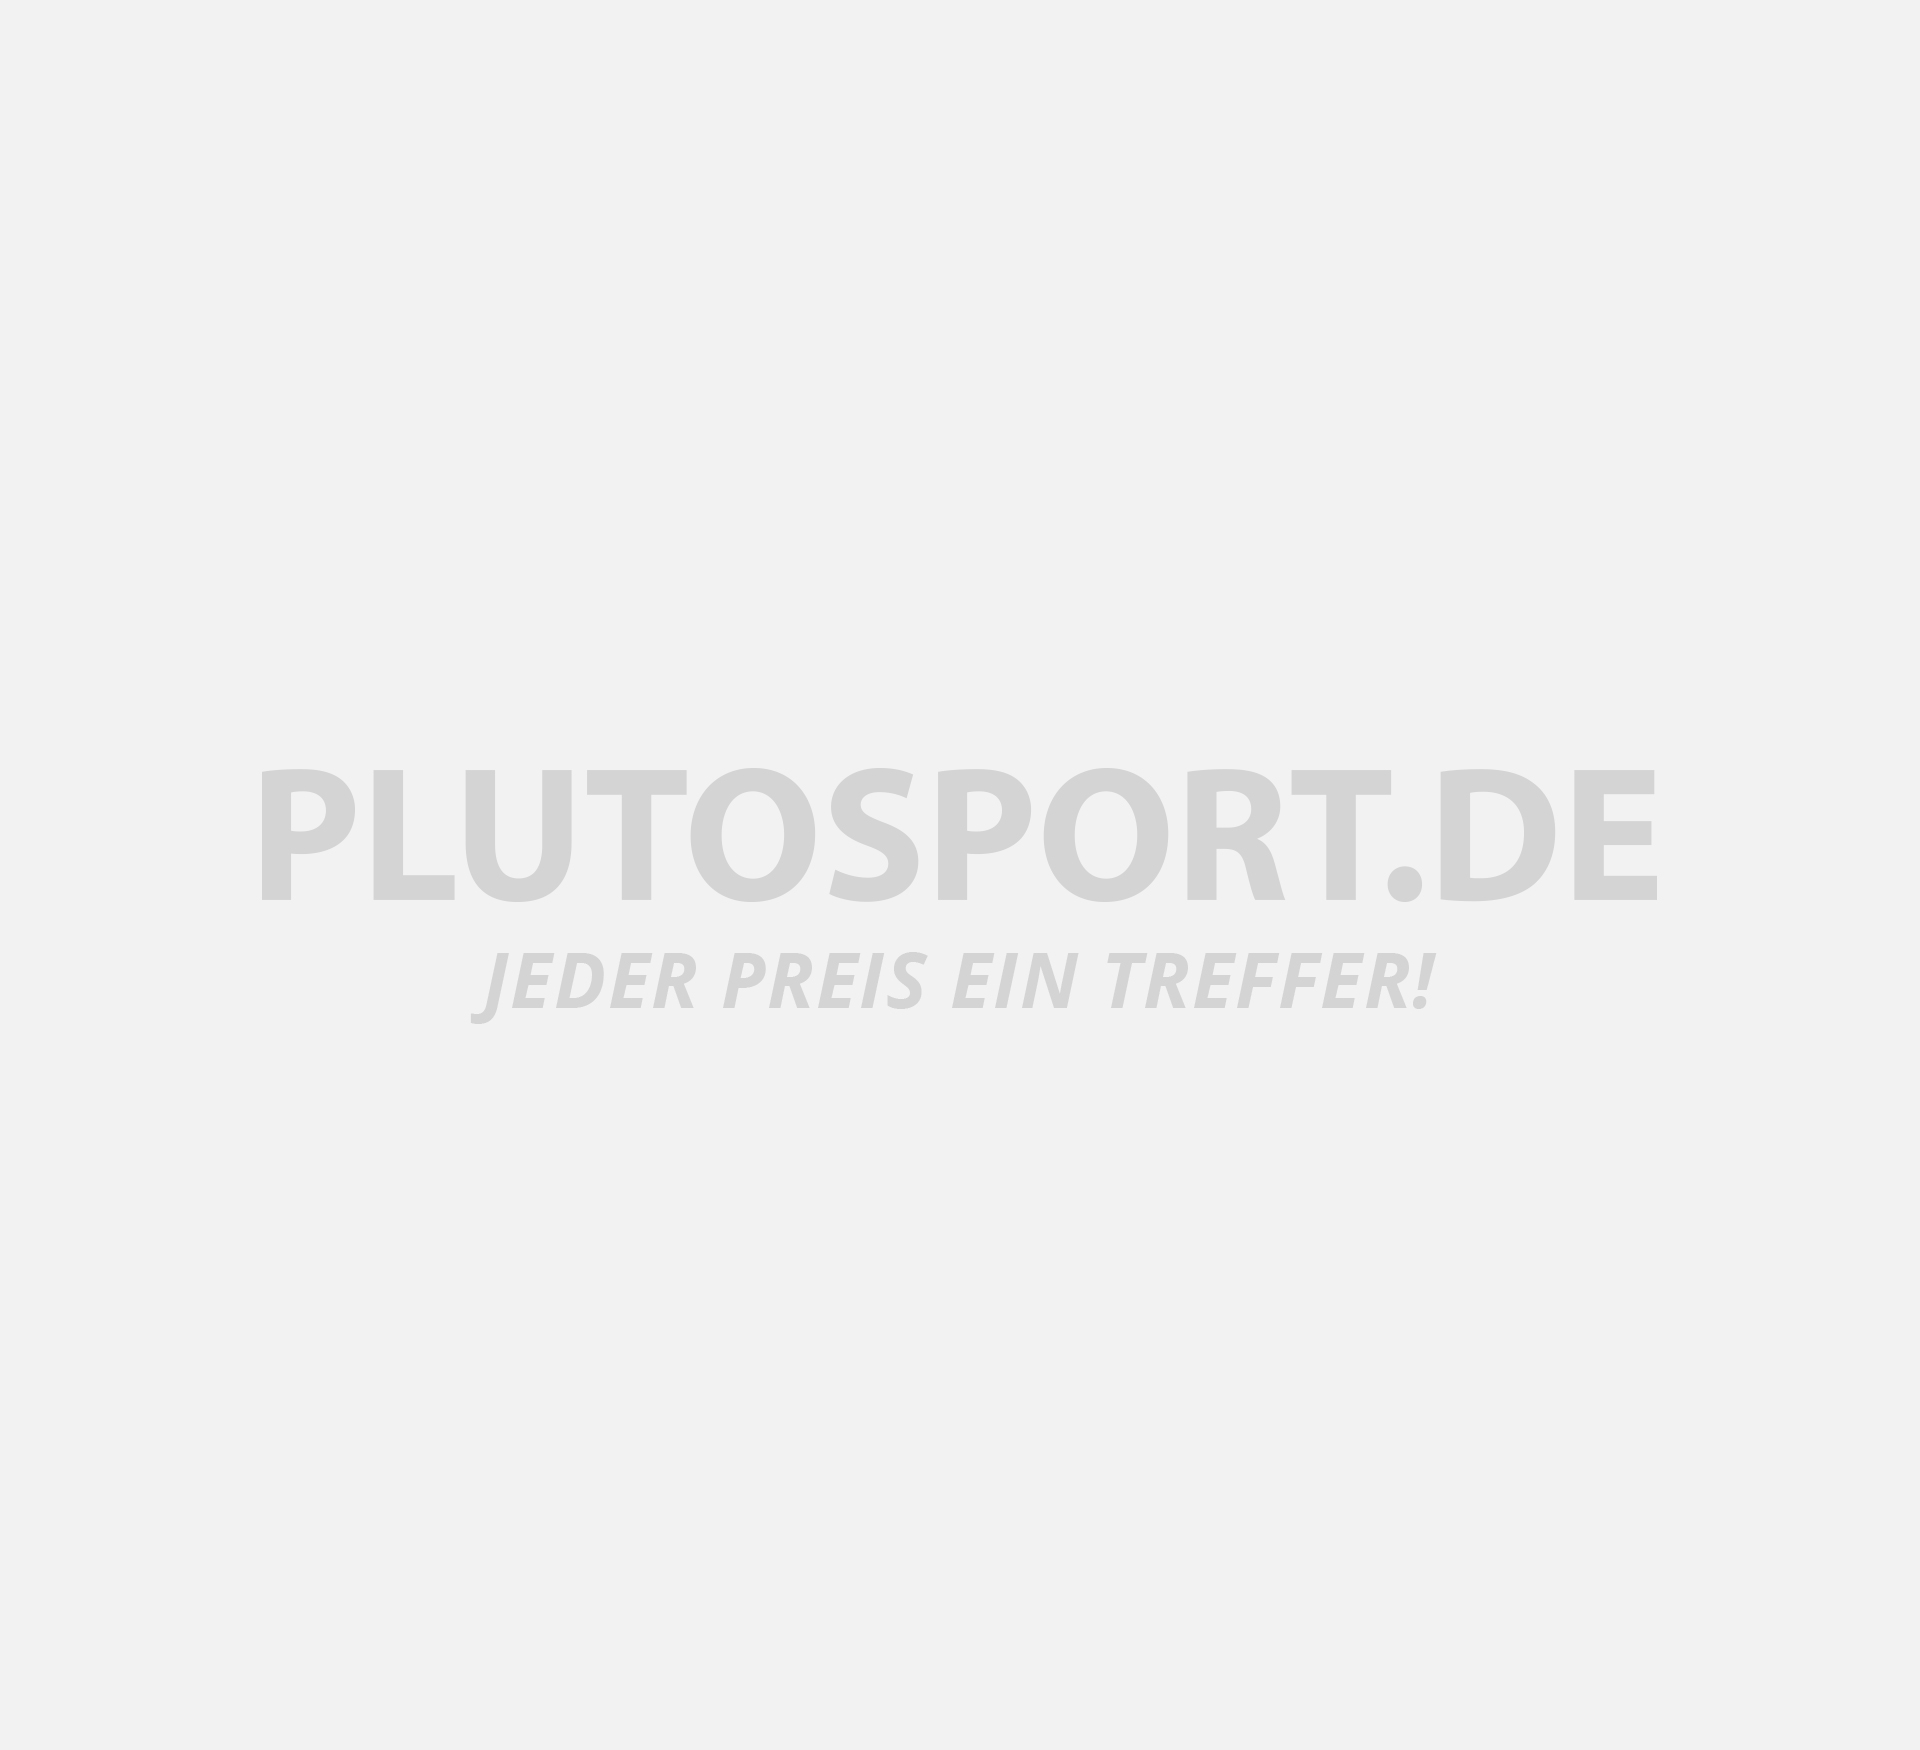 Uhlsport Torwarttech Torwart Shirt